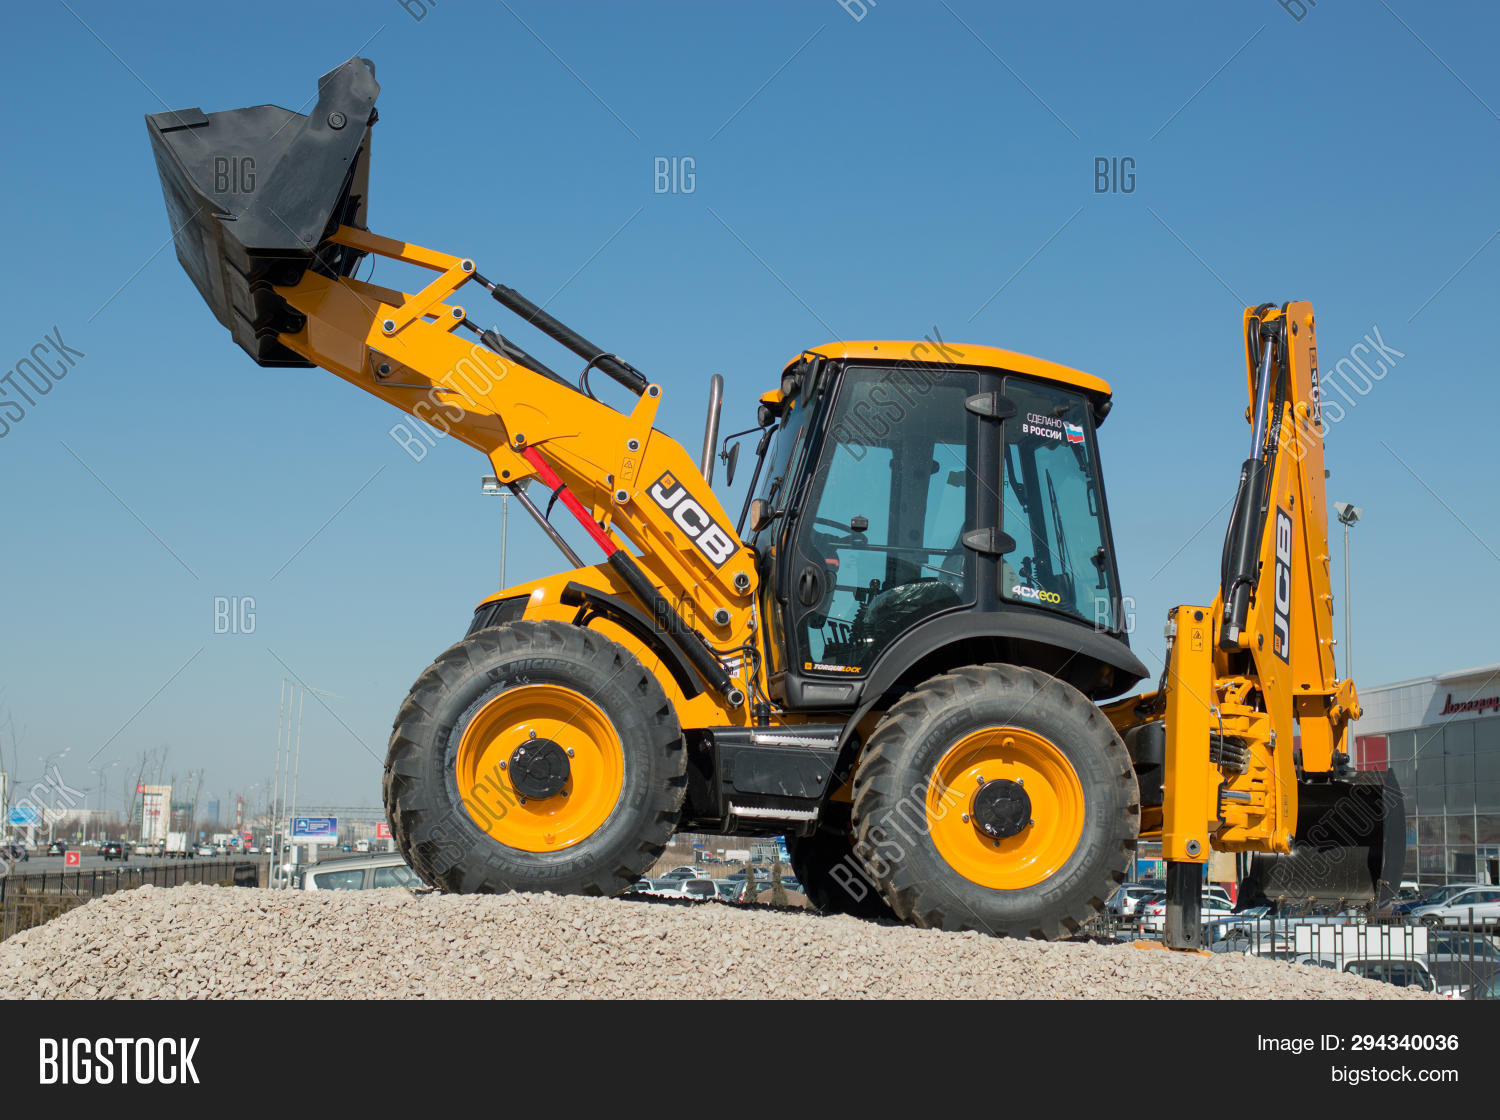 Jcb All-wheel Drive Image & Photo (Free Trial) | Bigstock